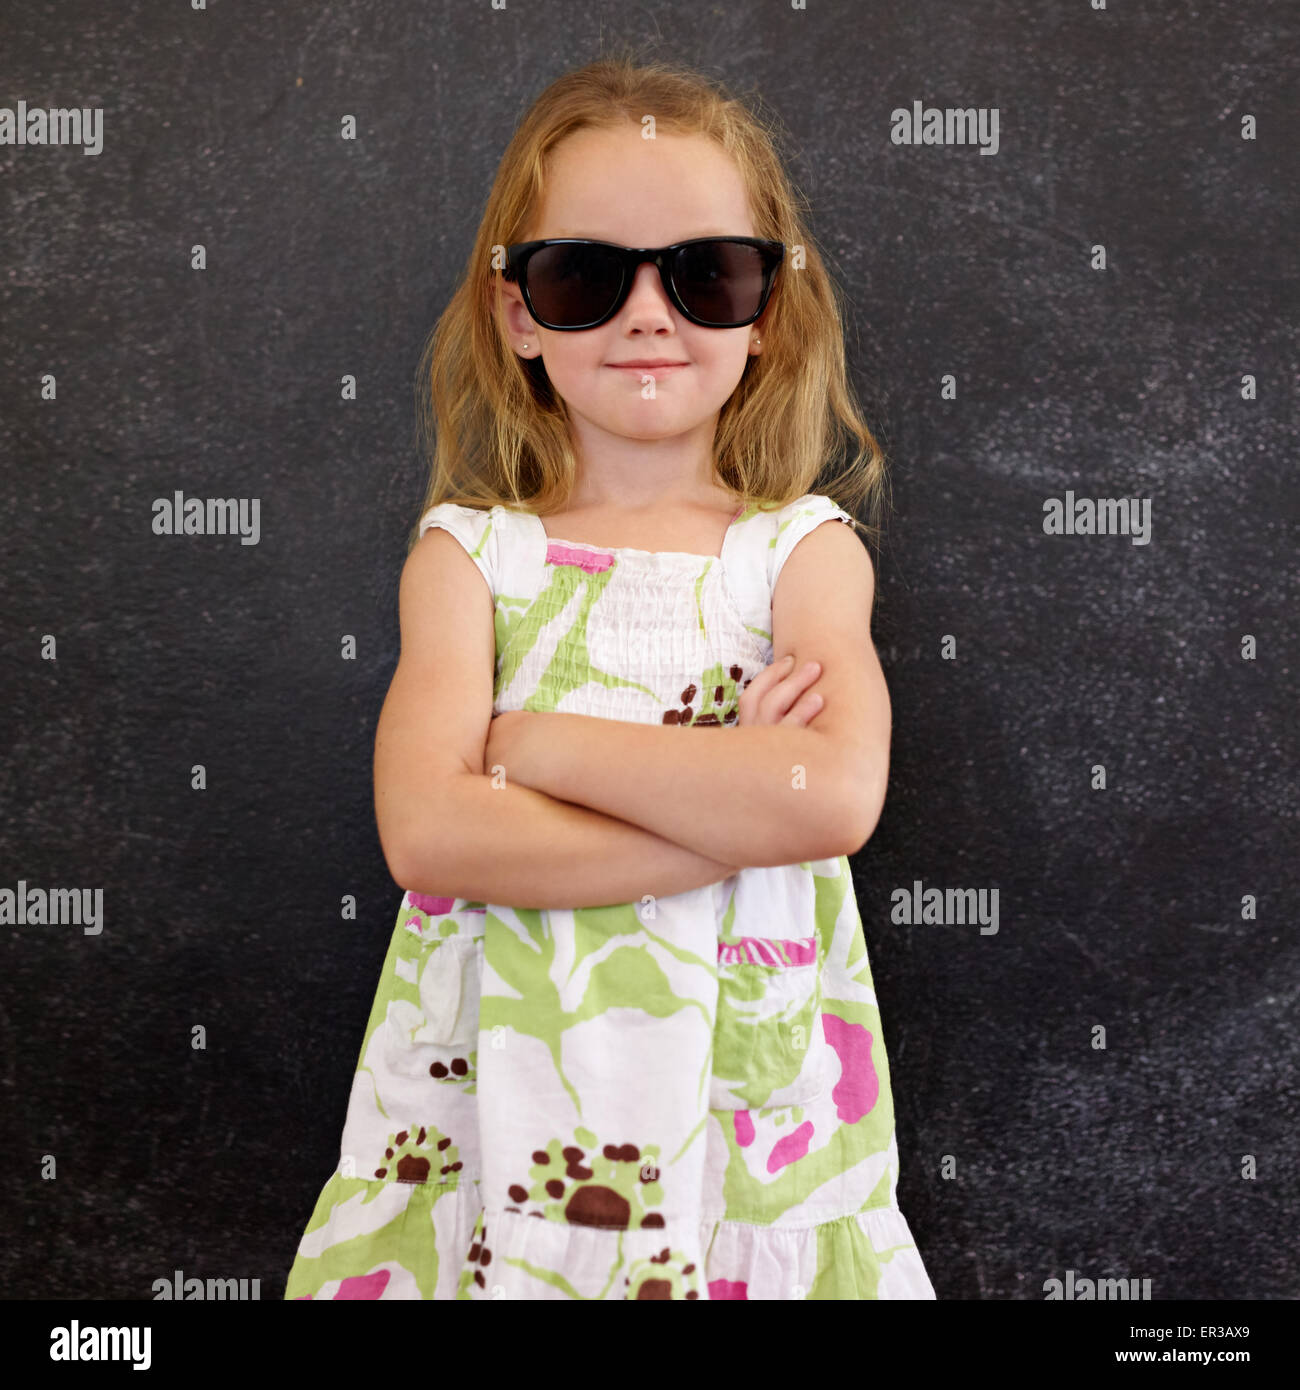 a446248a8b Portrait of cute little girl wearing sunglasses against a black wall. Young  girl standing in shades with her hands folded.